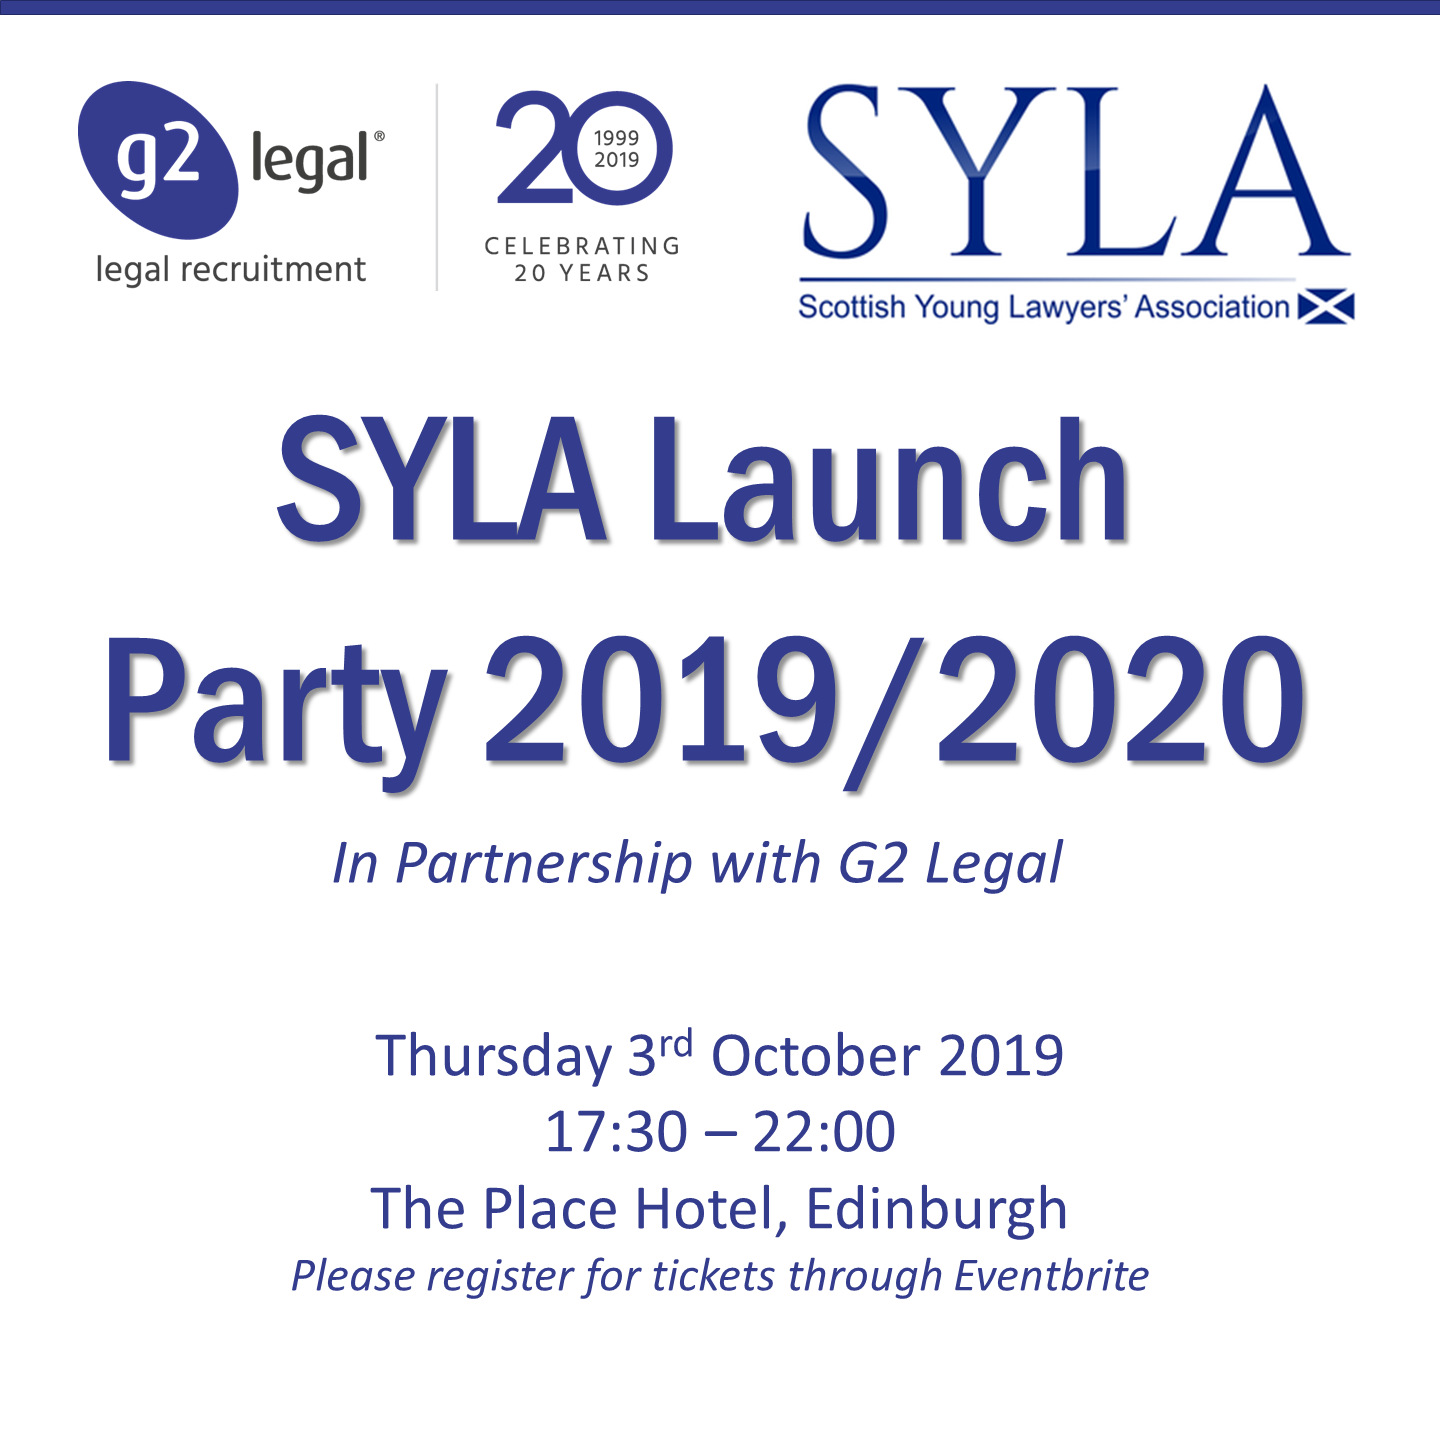 SYLA 2019/2020 Launch Party